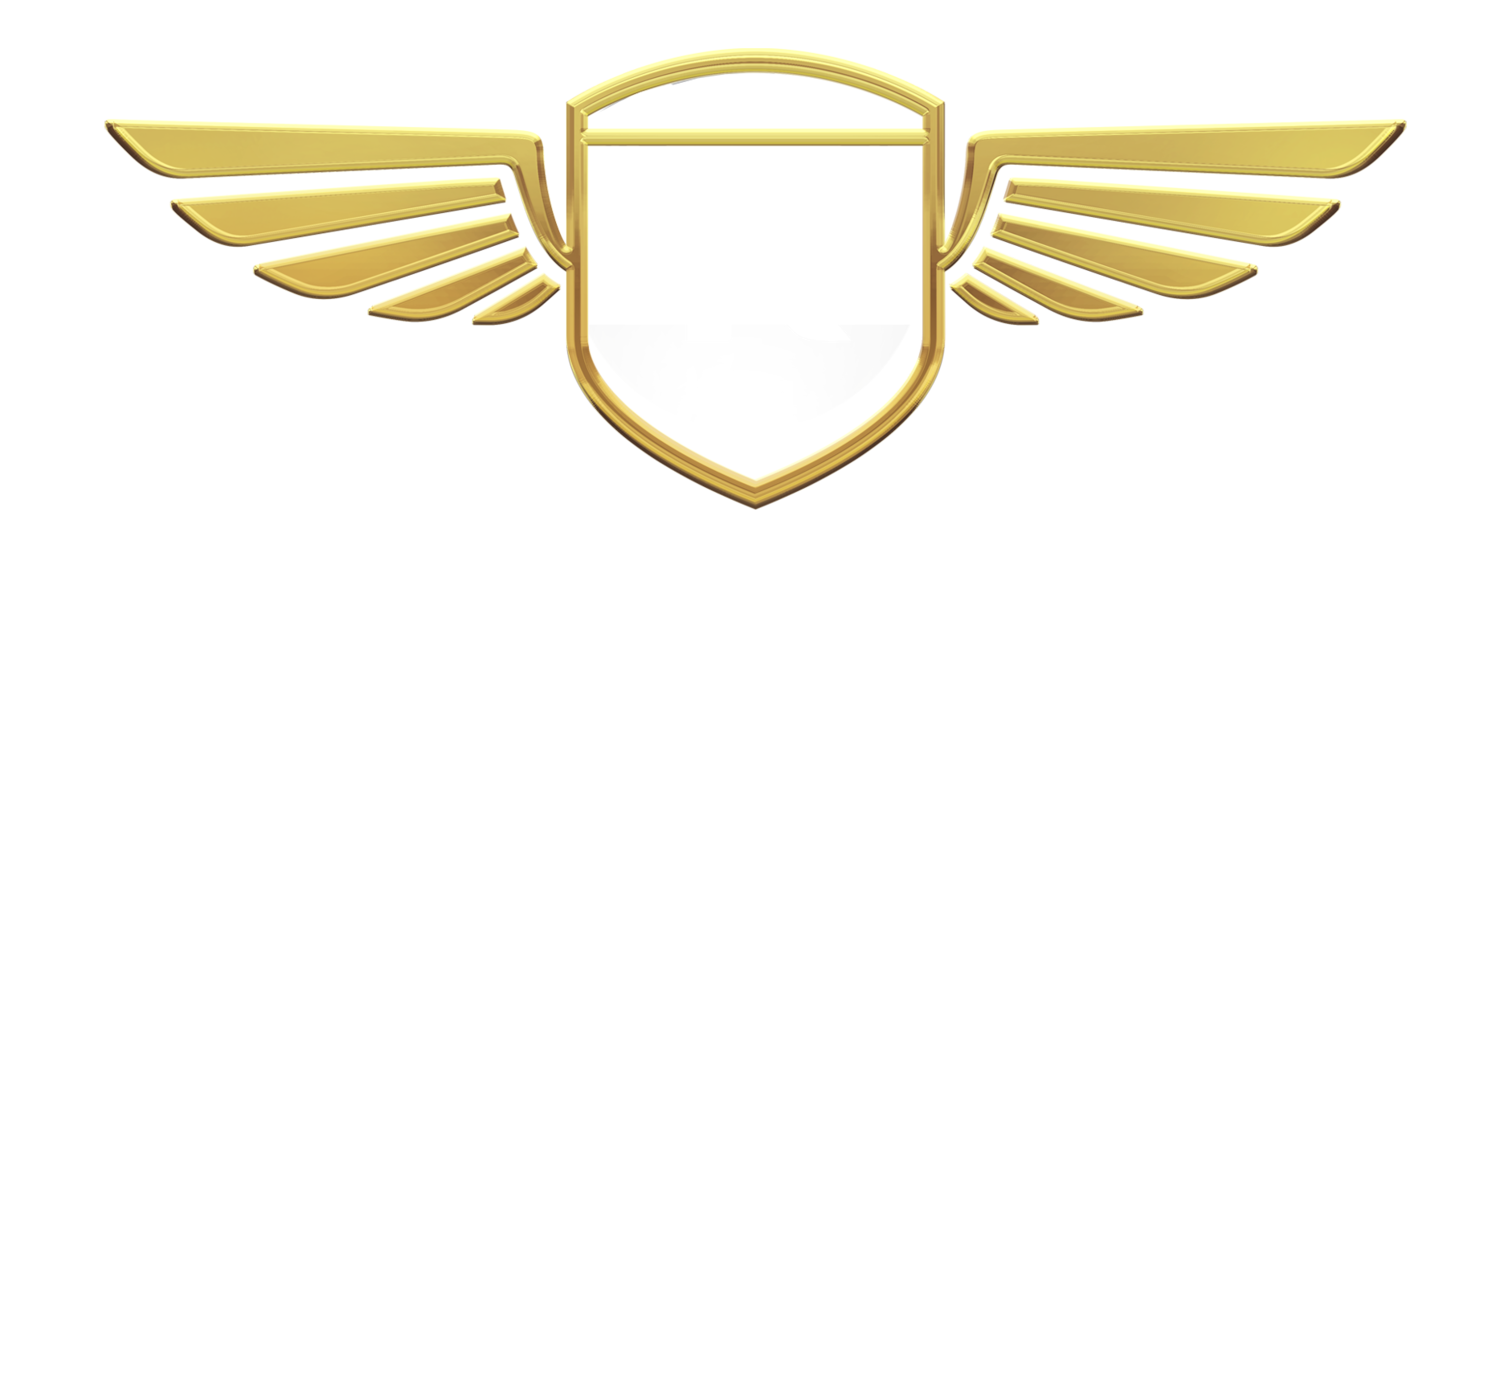 richardportman.design